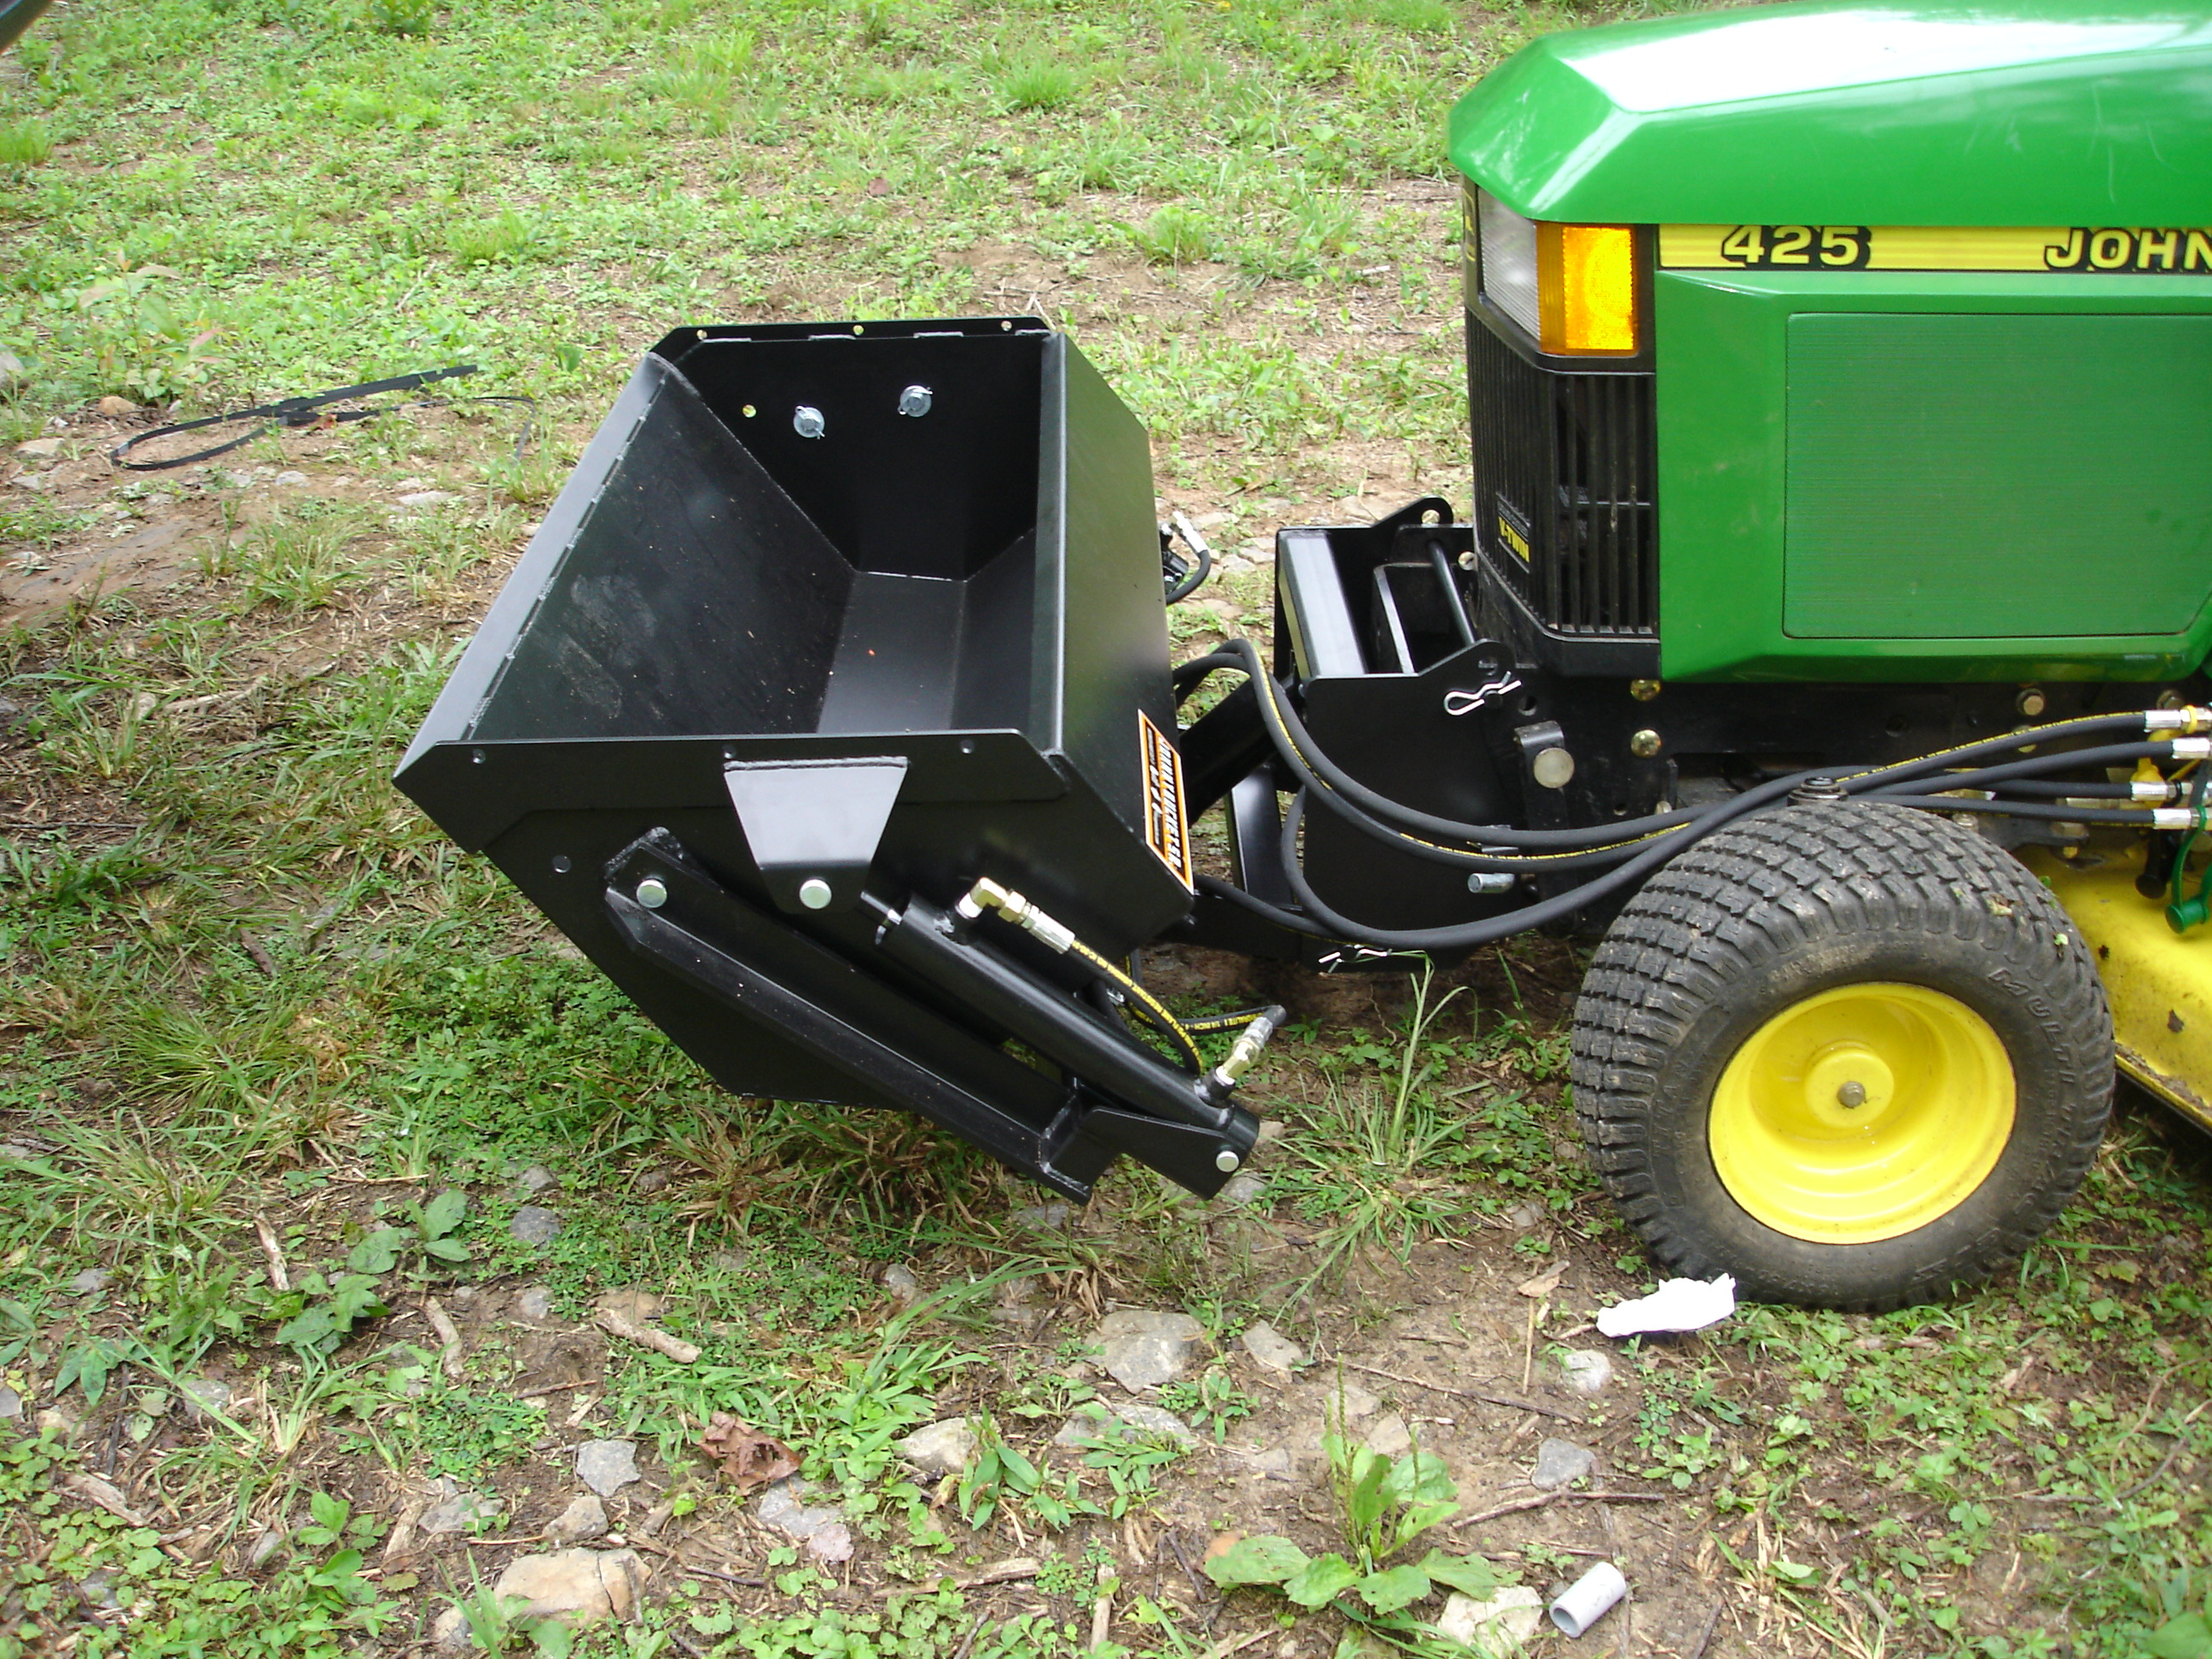 recalled company blade john deere recalls garden could lawn tractors operate mower unattended while picture of